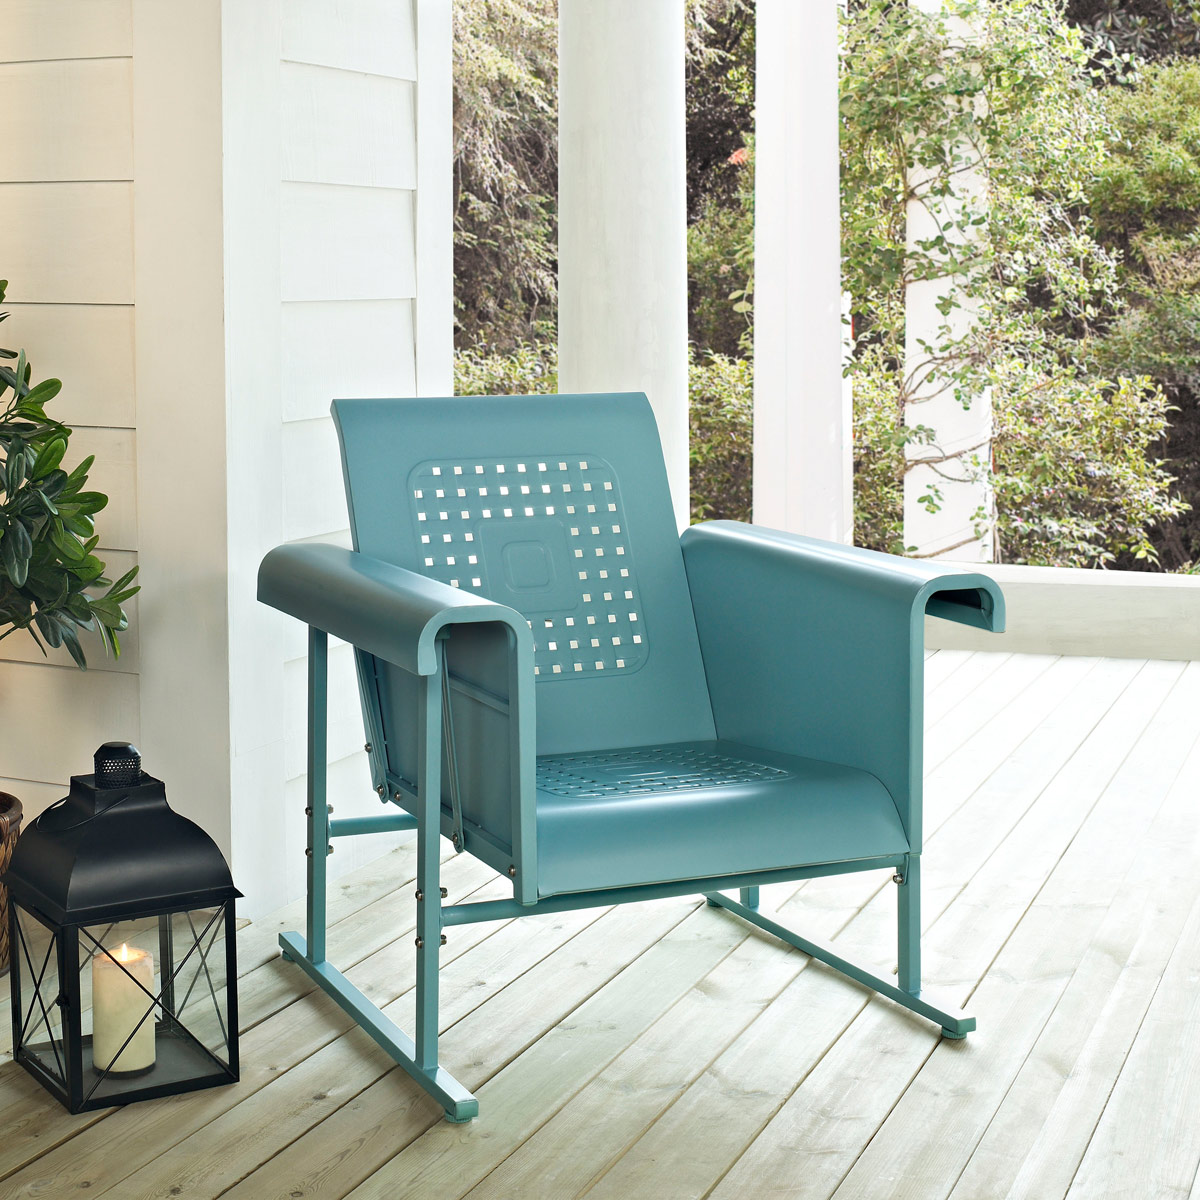 Charmant Crosley Veranda Single Outdoor Glider Chair In Caribbean Blue